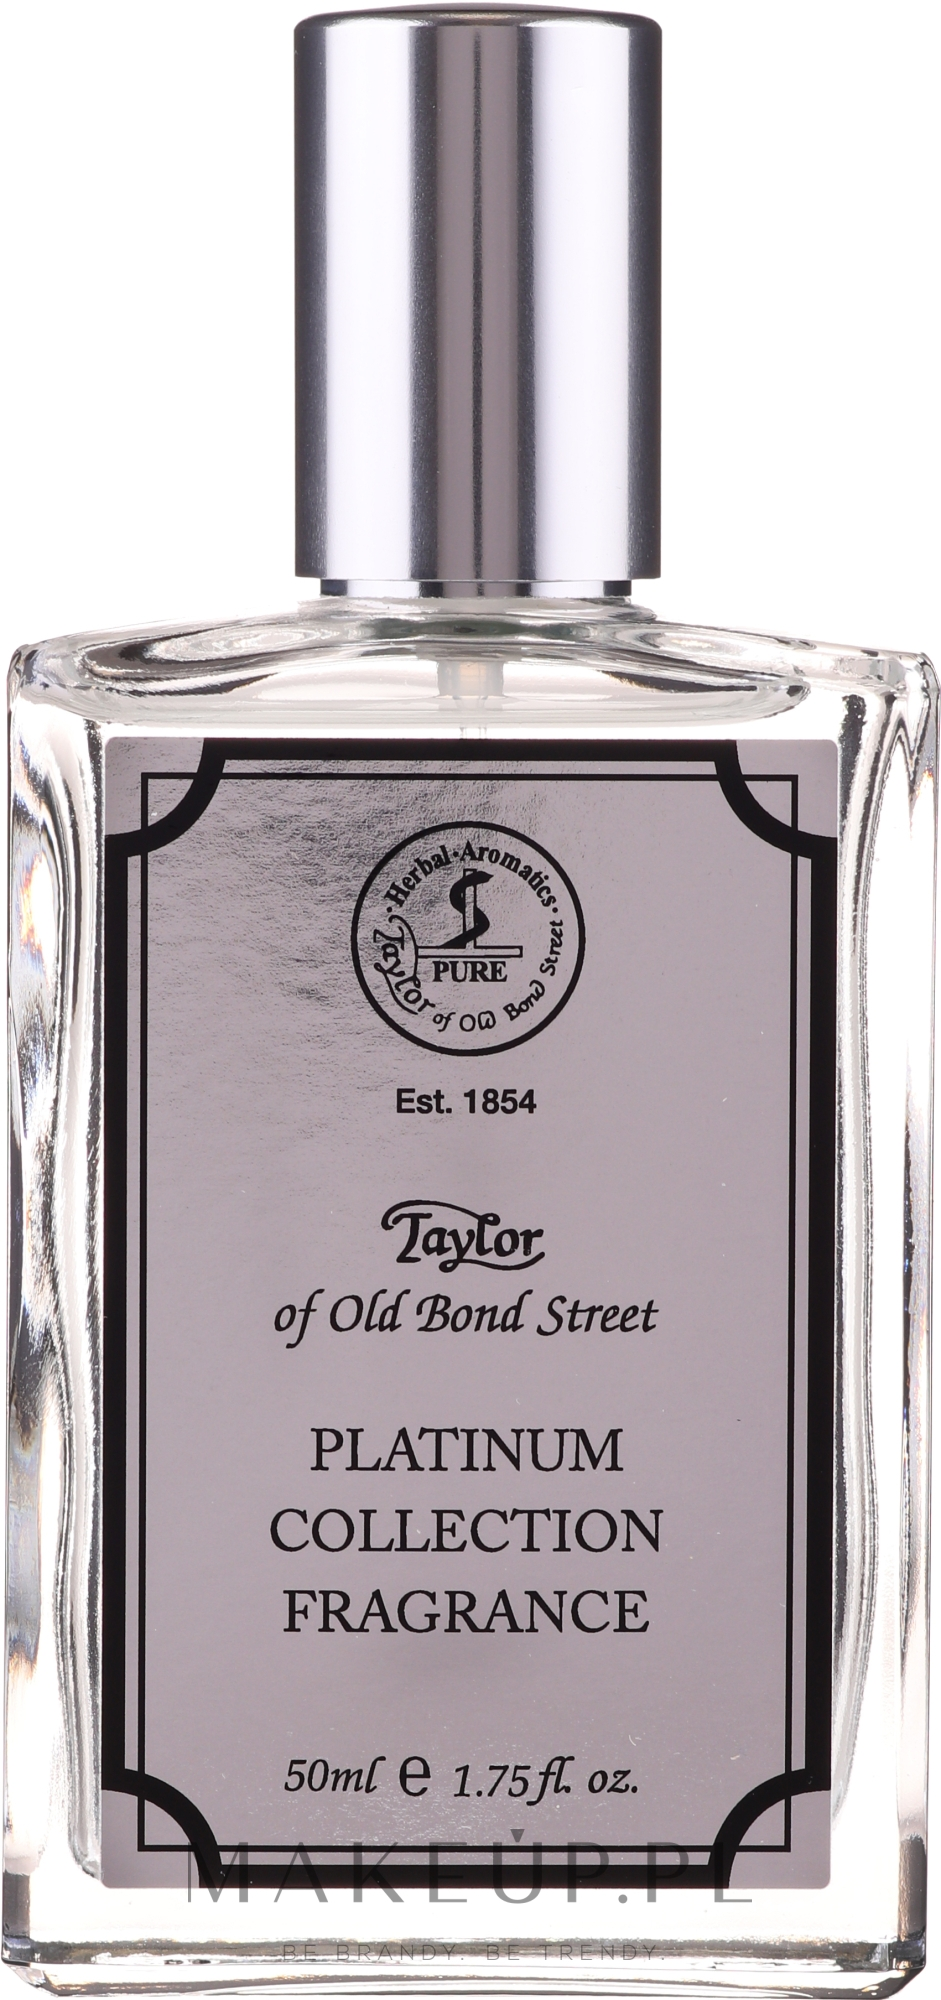 taylor of old bond street collection no. 74 - victorian lime fragrance